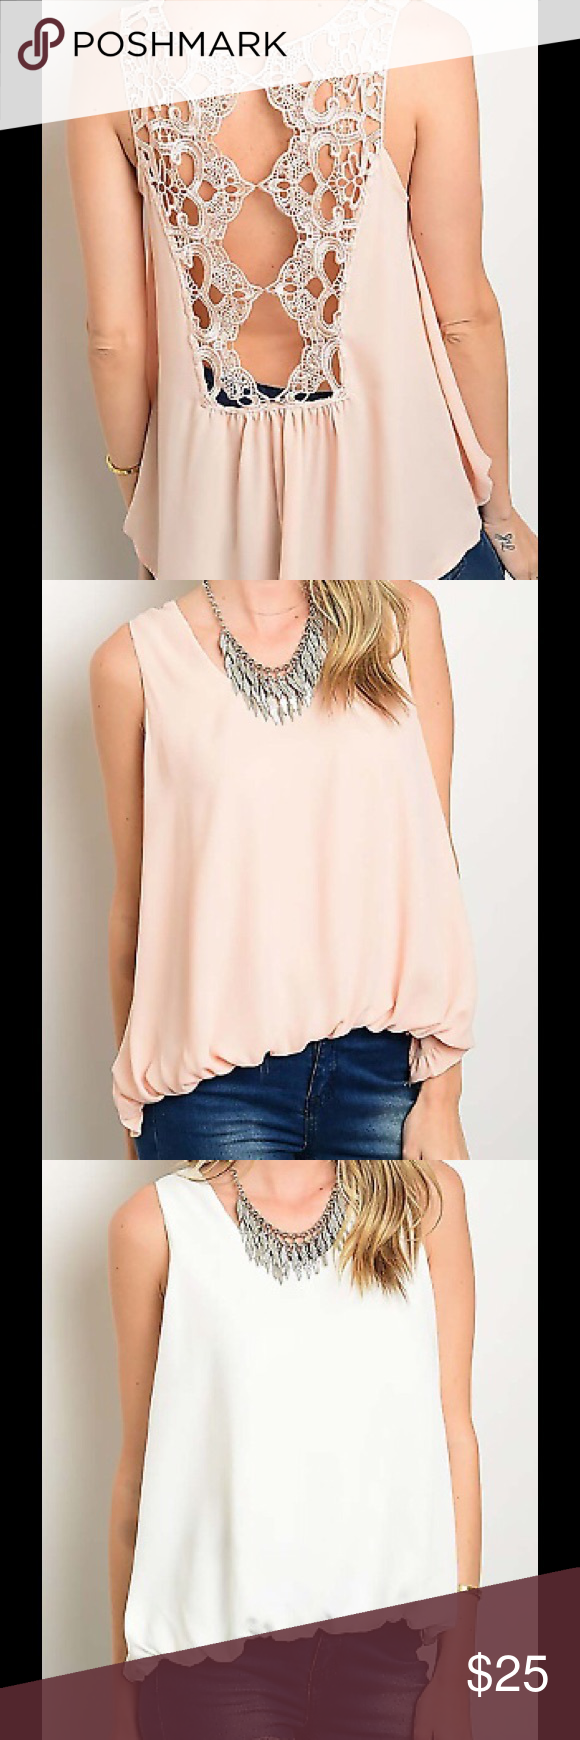 """SLEEVELESS CROCHET LACE BACK SOLID BLOUSE TOP SLEEVELESS CROCHET LACE BACK SOLID BLOUSE TOP Country: CHINA Fabric Content: 100% POLYESTER Size Scale: S-M-L Description: L: 25"""" B: 36"""" W:40 """" ColorWHITE,PEACH. Both colors are available Tops Blouses"""